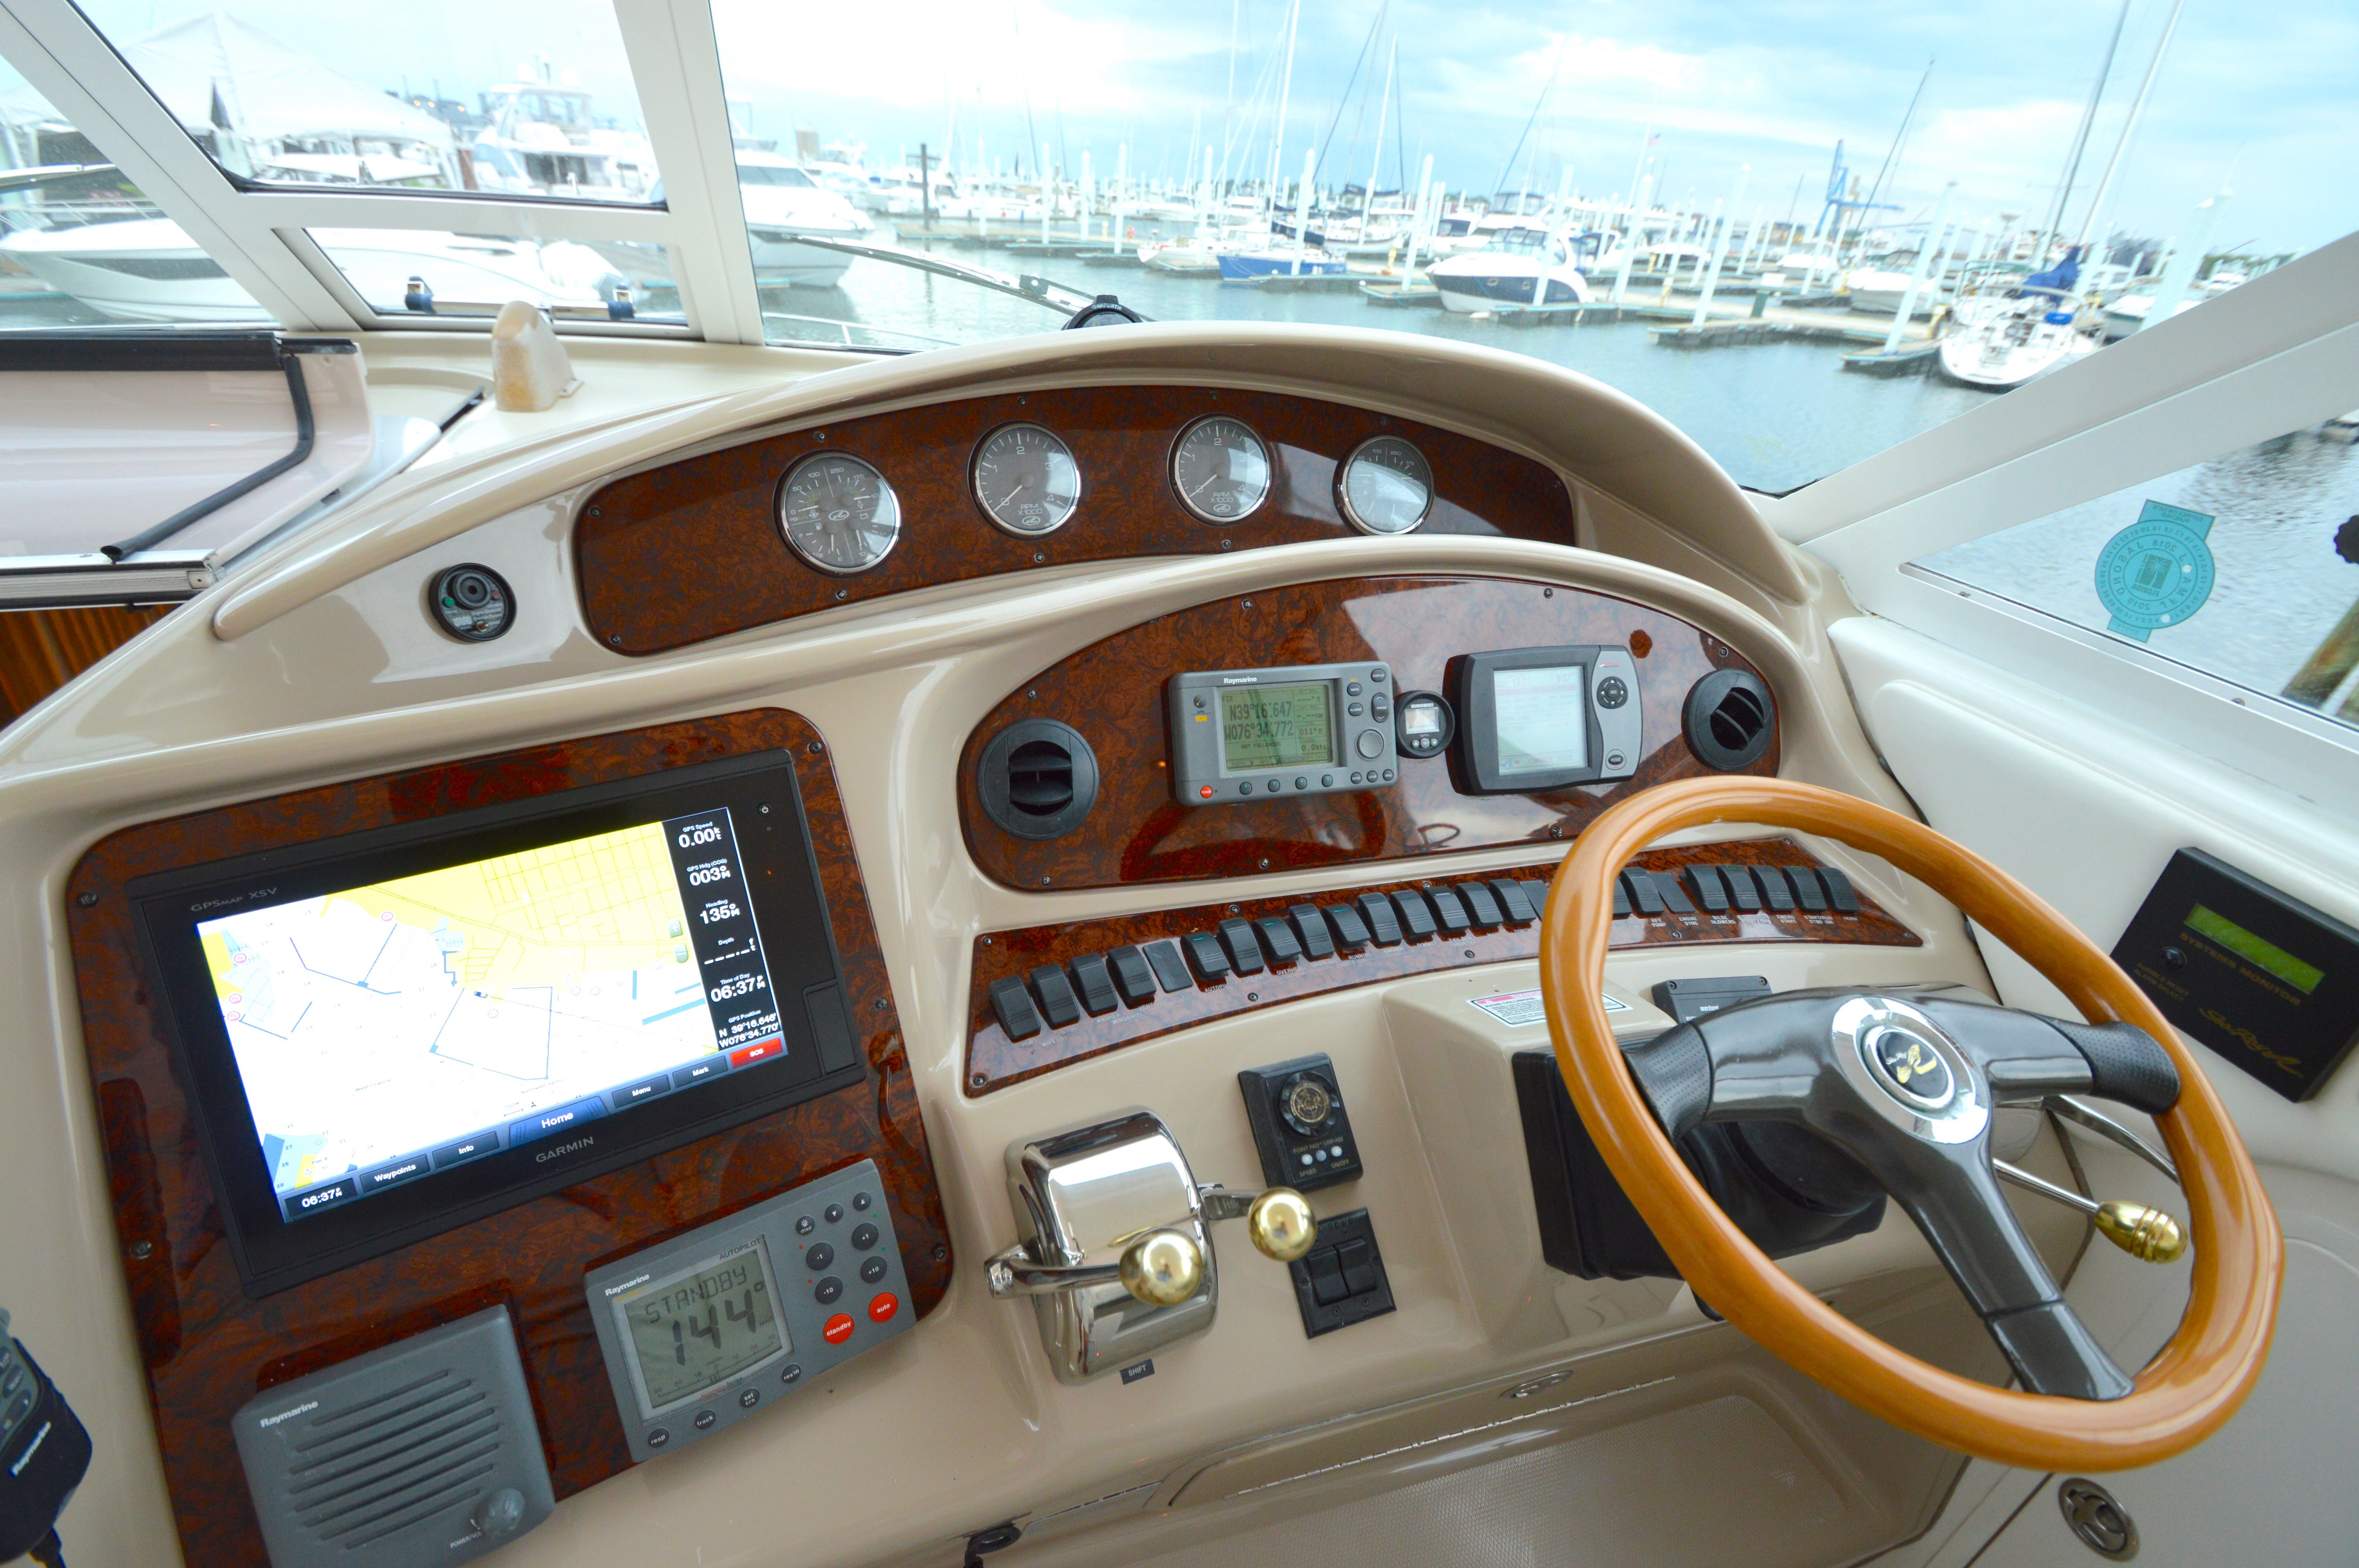 2004 Sea Ray 390 Motoryacht - Yacht Sales and Services